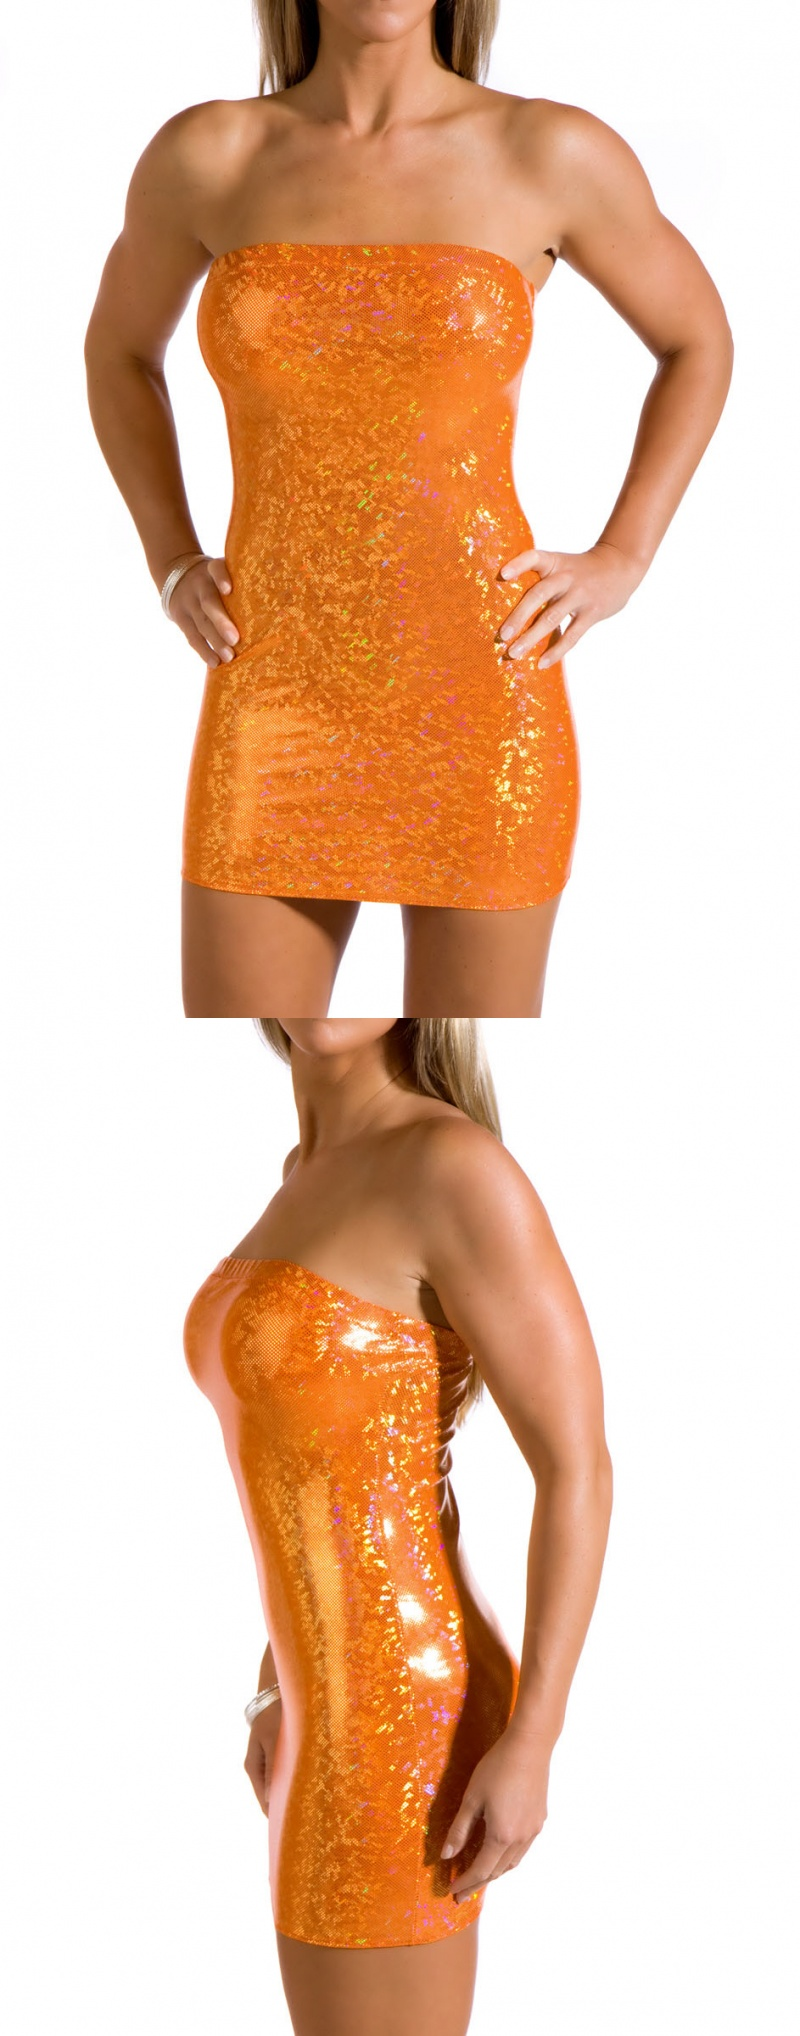 Dec 02, 2009 Orange holographic mini dress